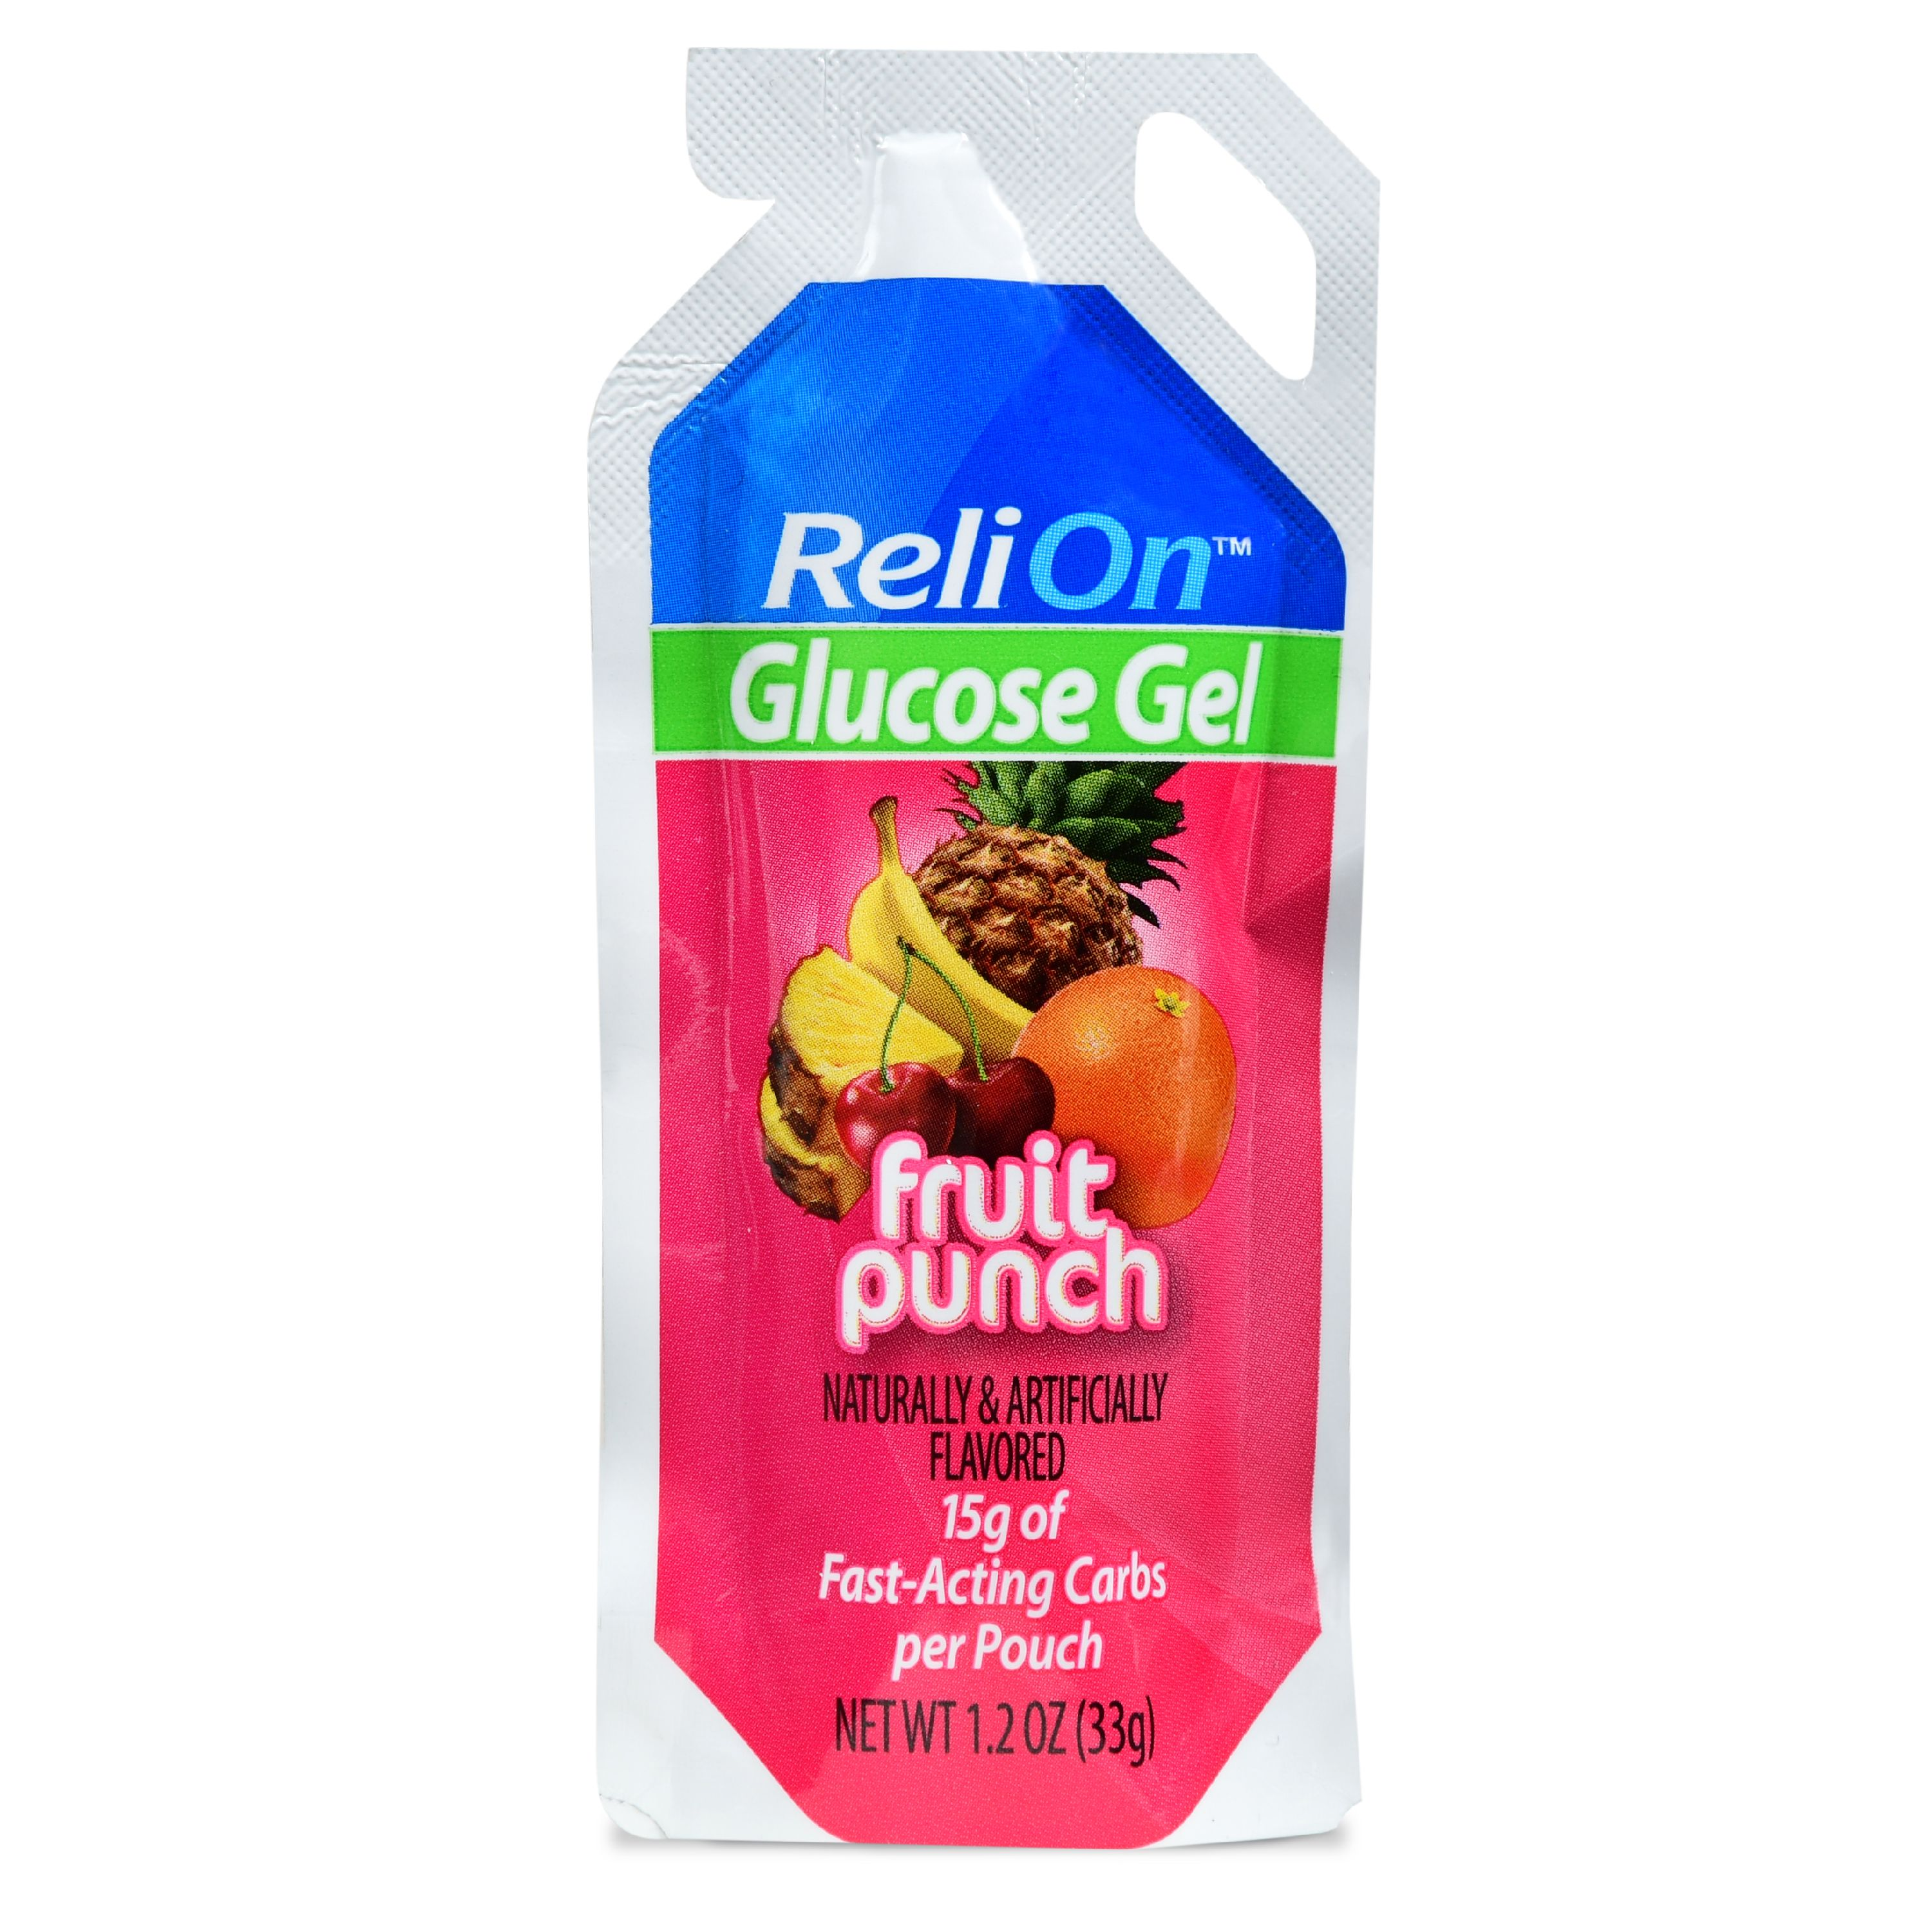 (2 Pack) ReliOn Fruit Punch Glucose Gel, 1.2 Oz